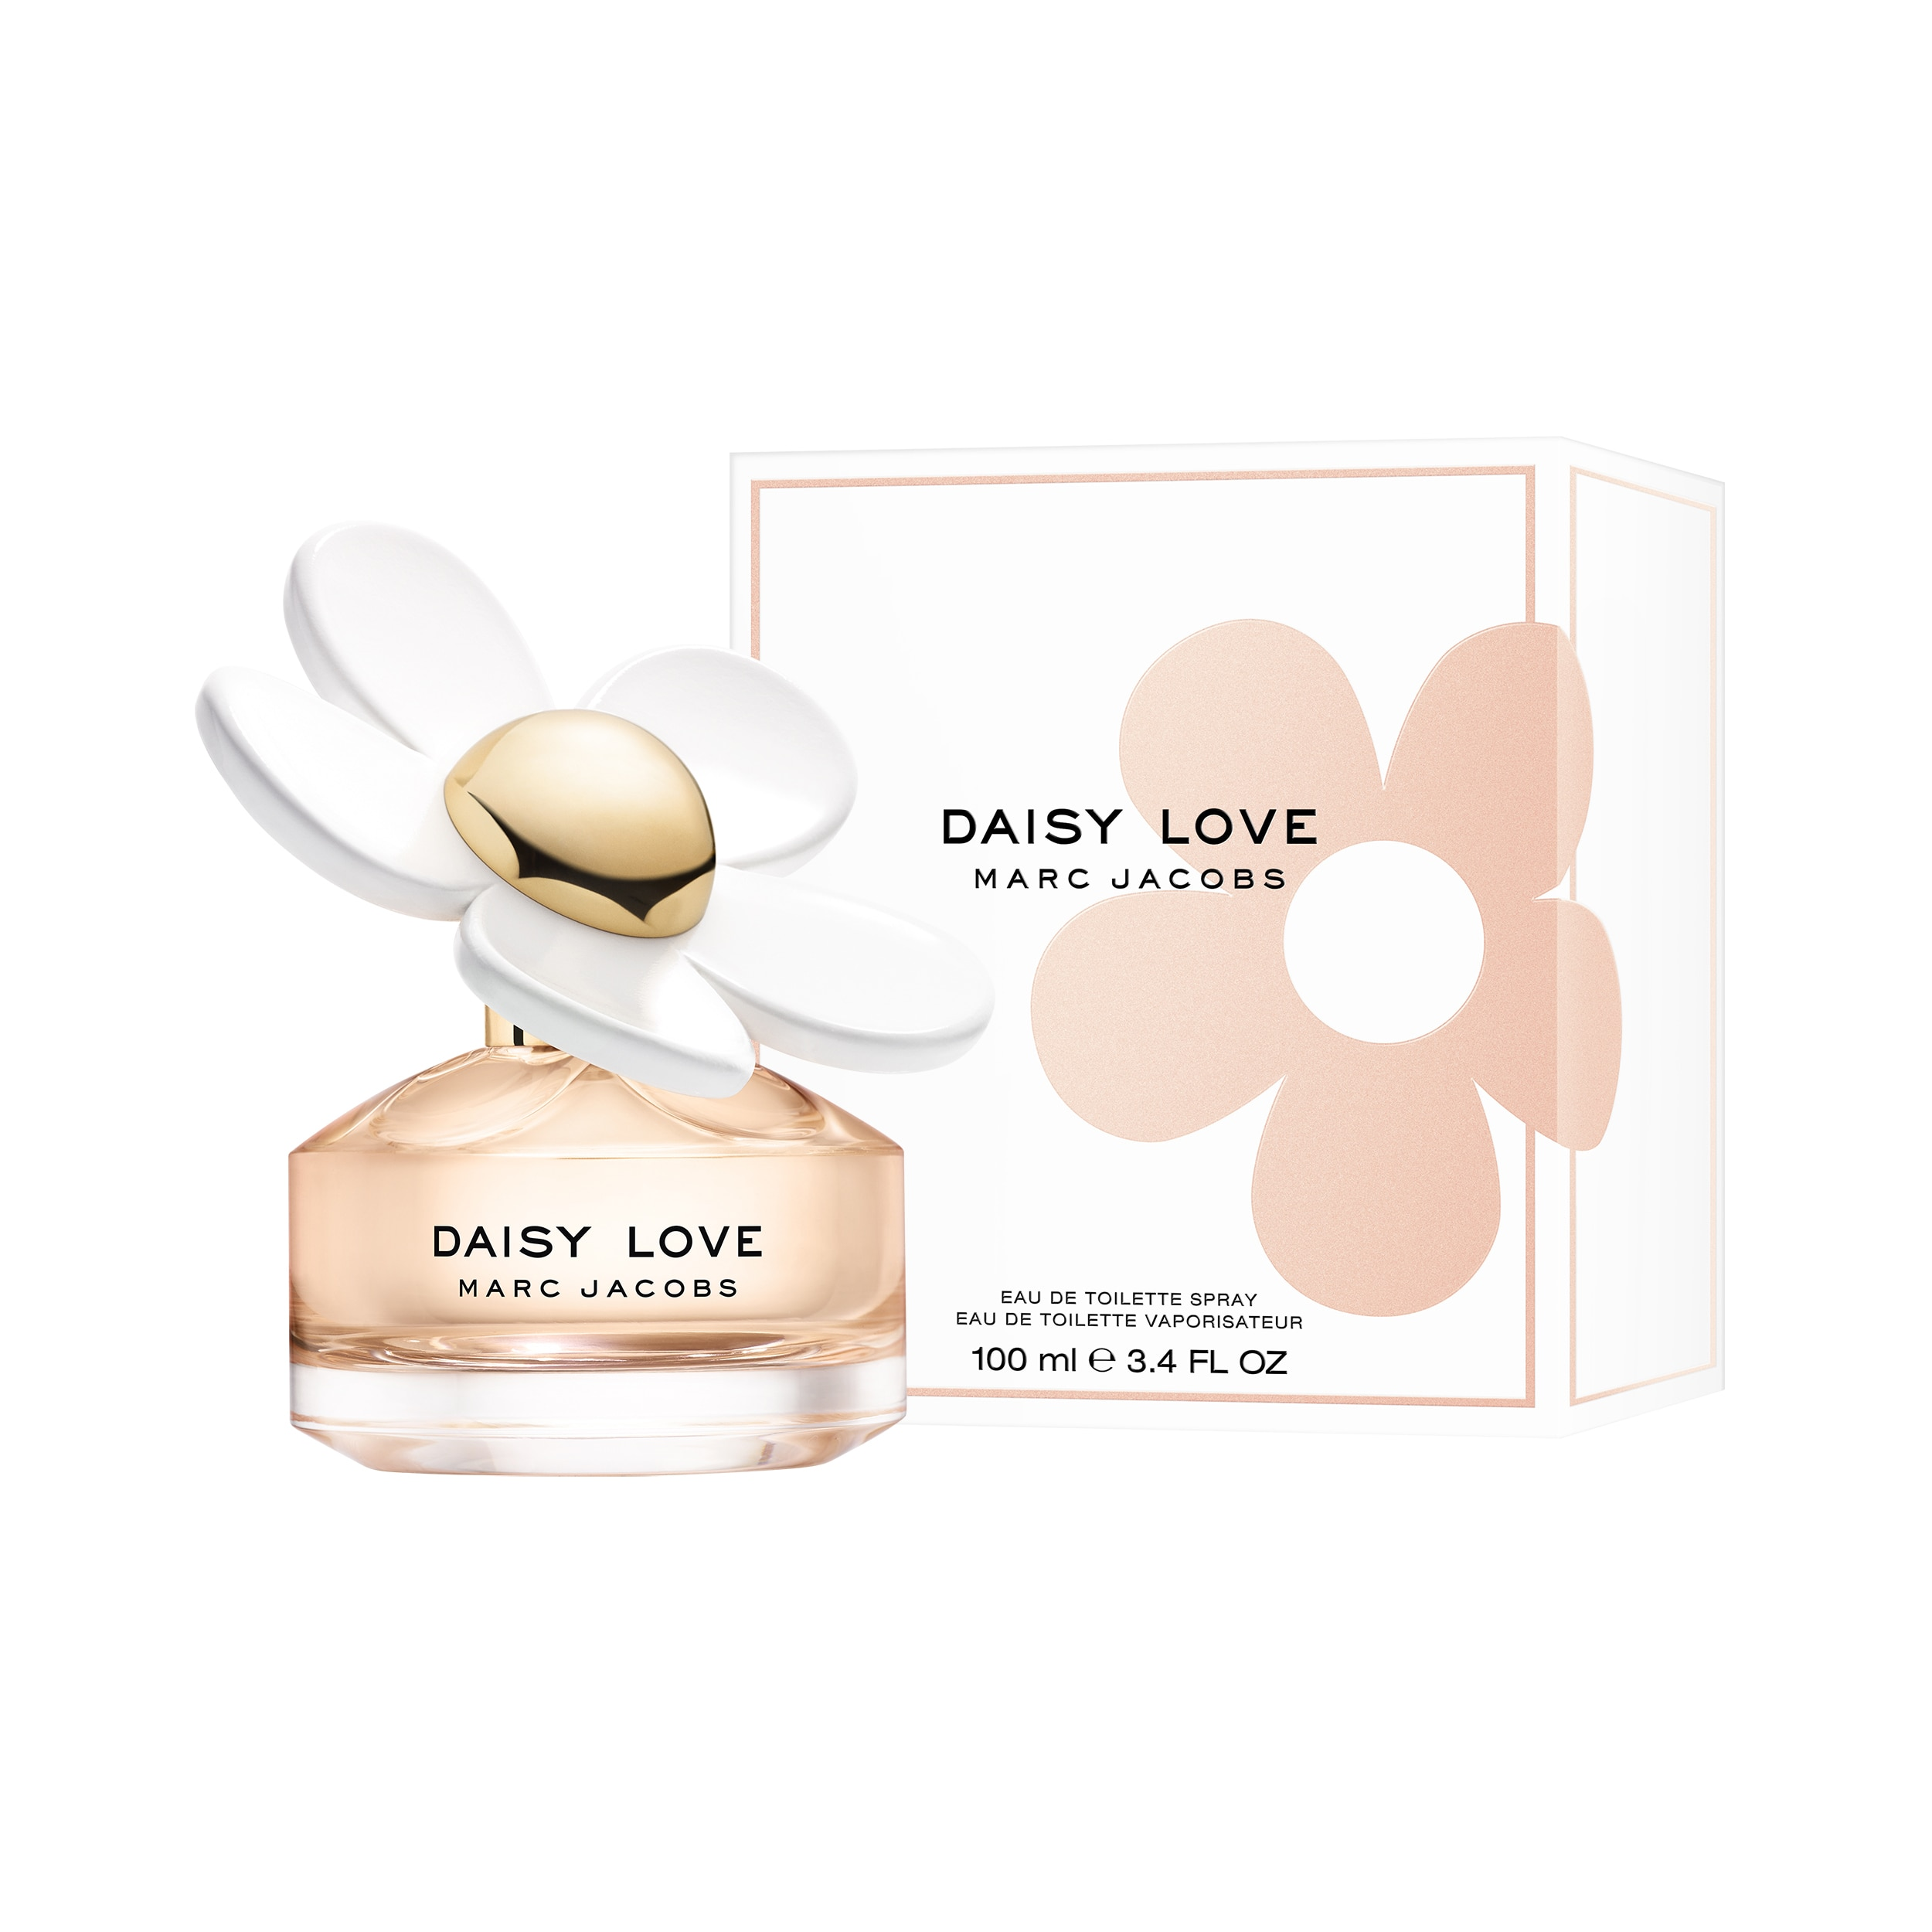 DAISY LOVE EAU DE TOILETTE 100 ML